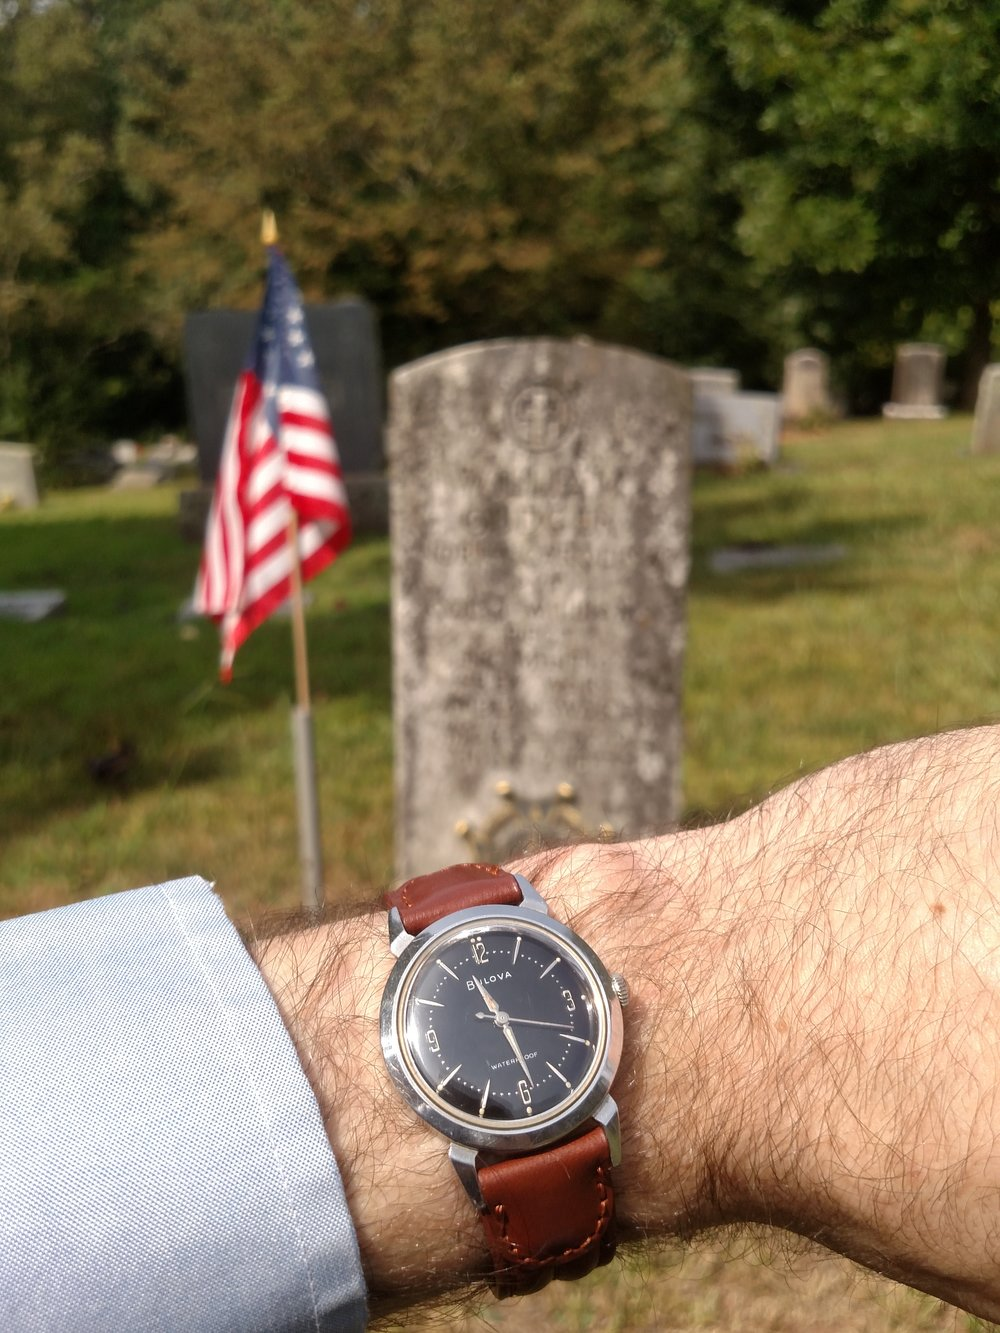 1959 Bulova at the grave site of an early ancestor (from Scotland) who fought in the American Revolutionary War  Swannanoa, Blue Ridge Mountains, North Carolina